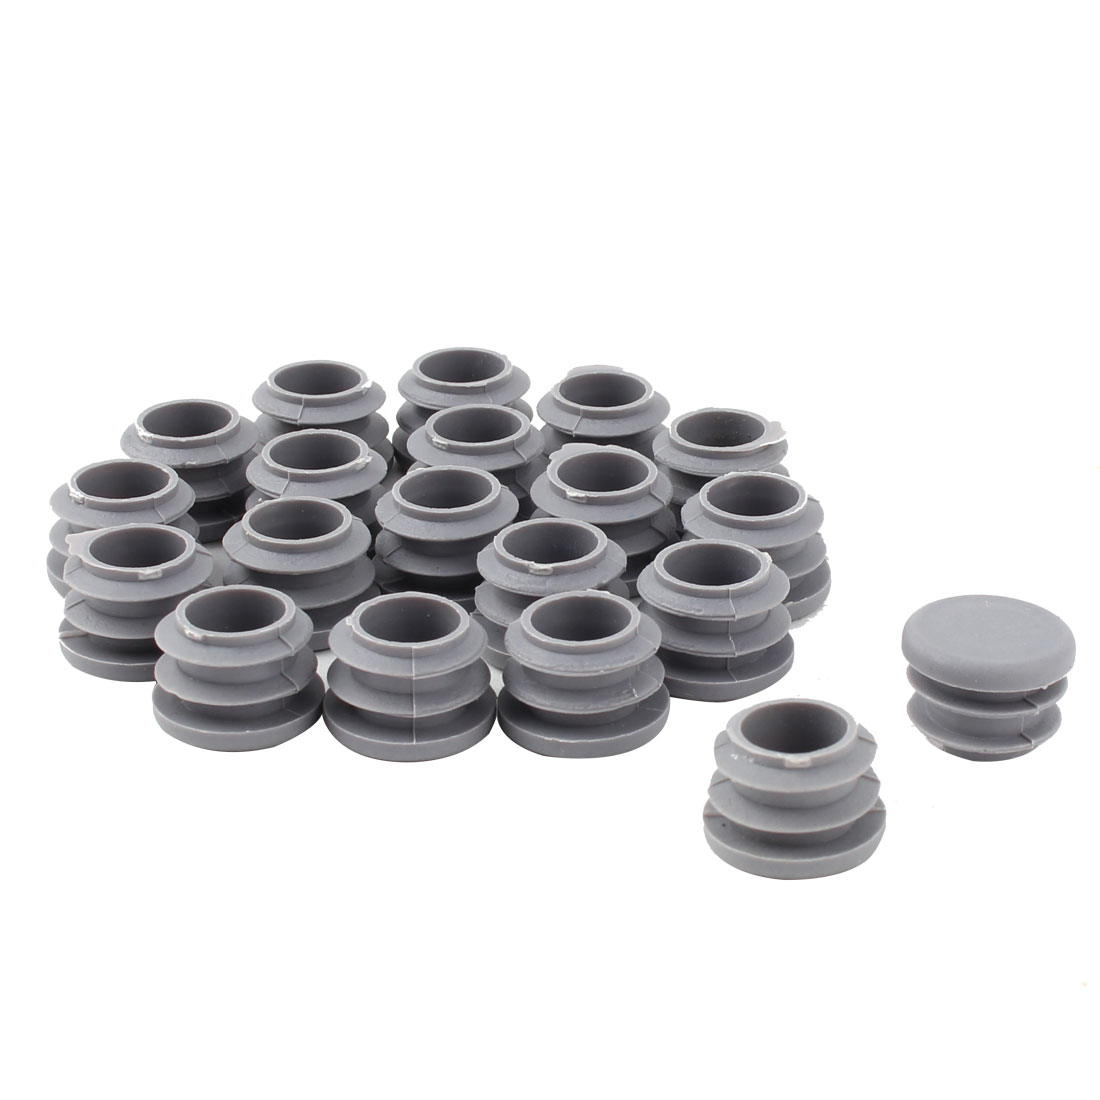 Furniture Table Chair Plastic Round Tube Pipe Insert Cover Protector Gray 19mm Dia 20pcs